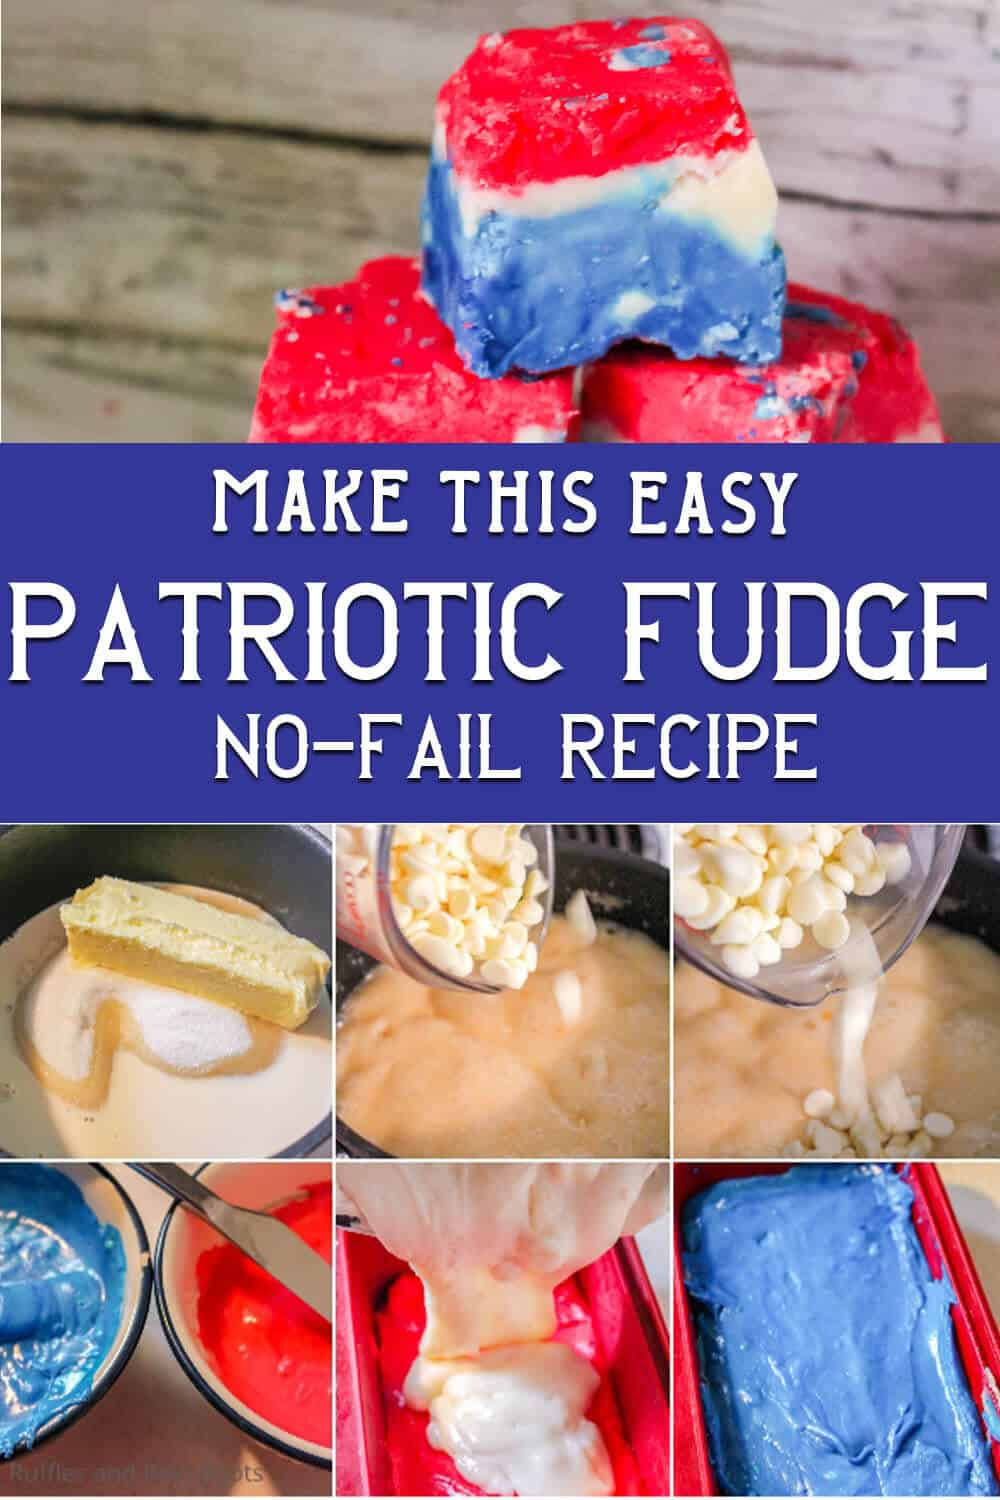 photo collage of 3-ingredient fudge for July 4th with text which reads make this easy patriotic fudge no-fail recipe